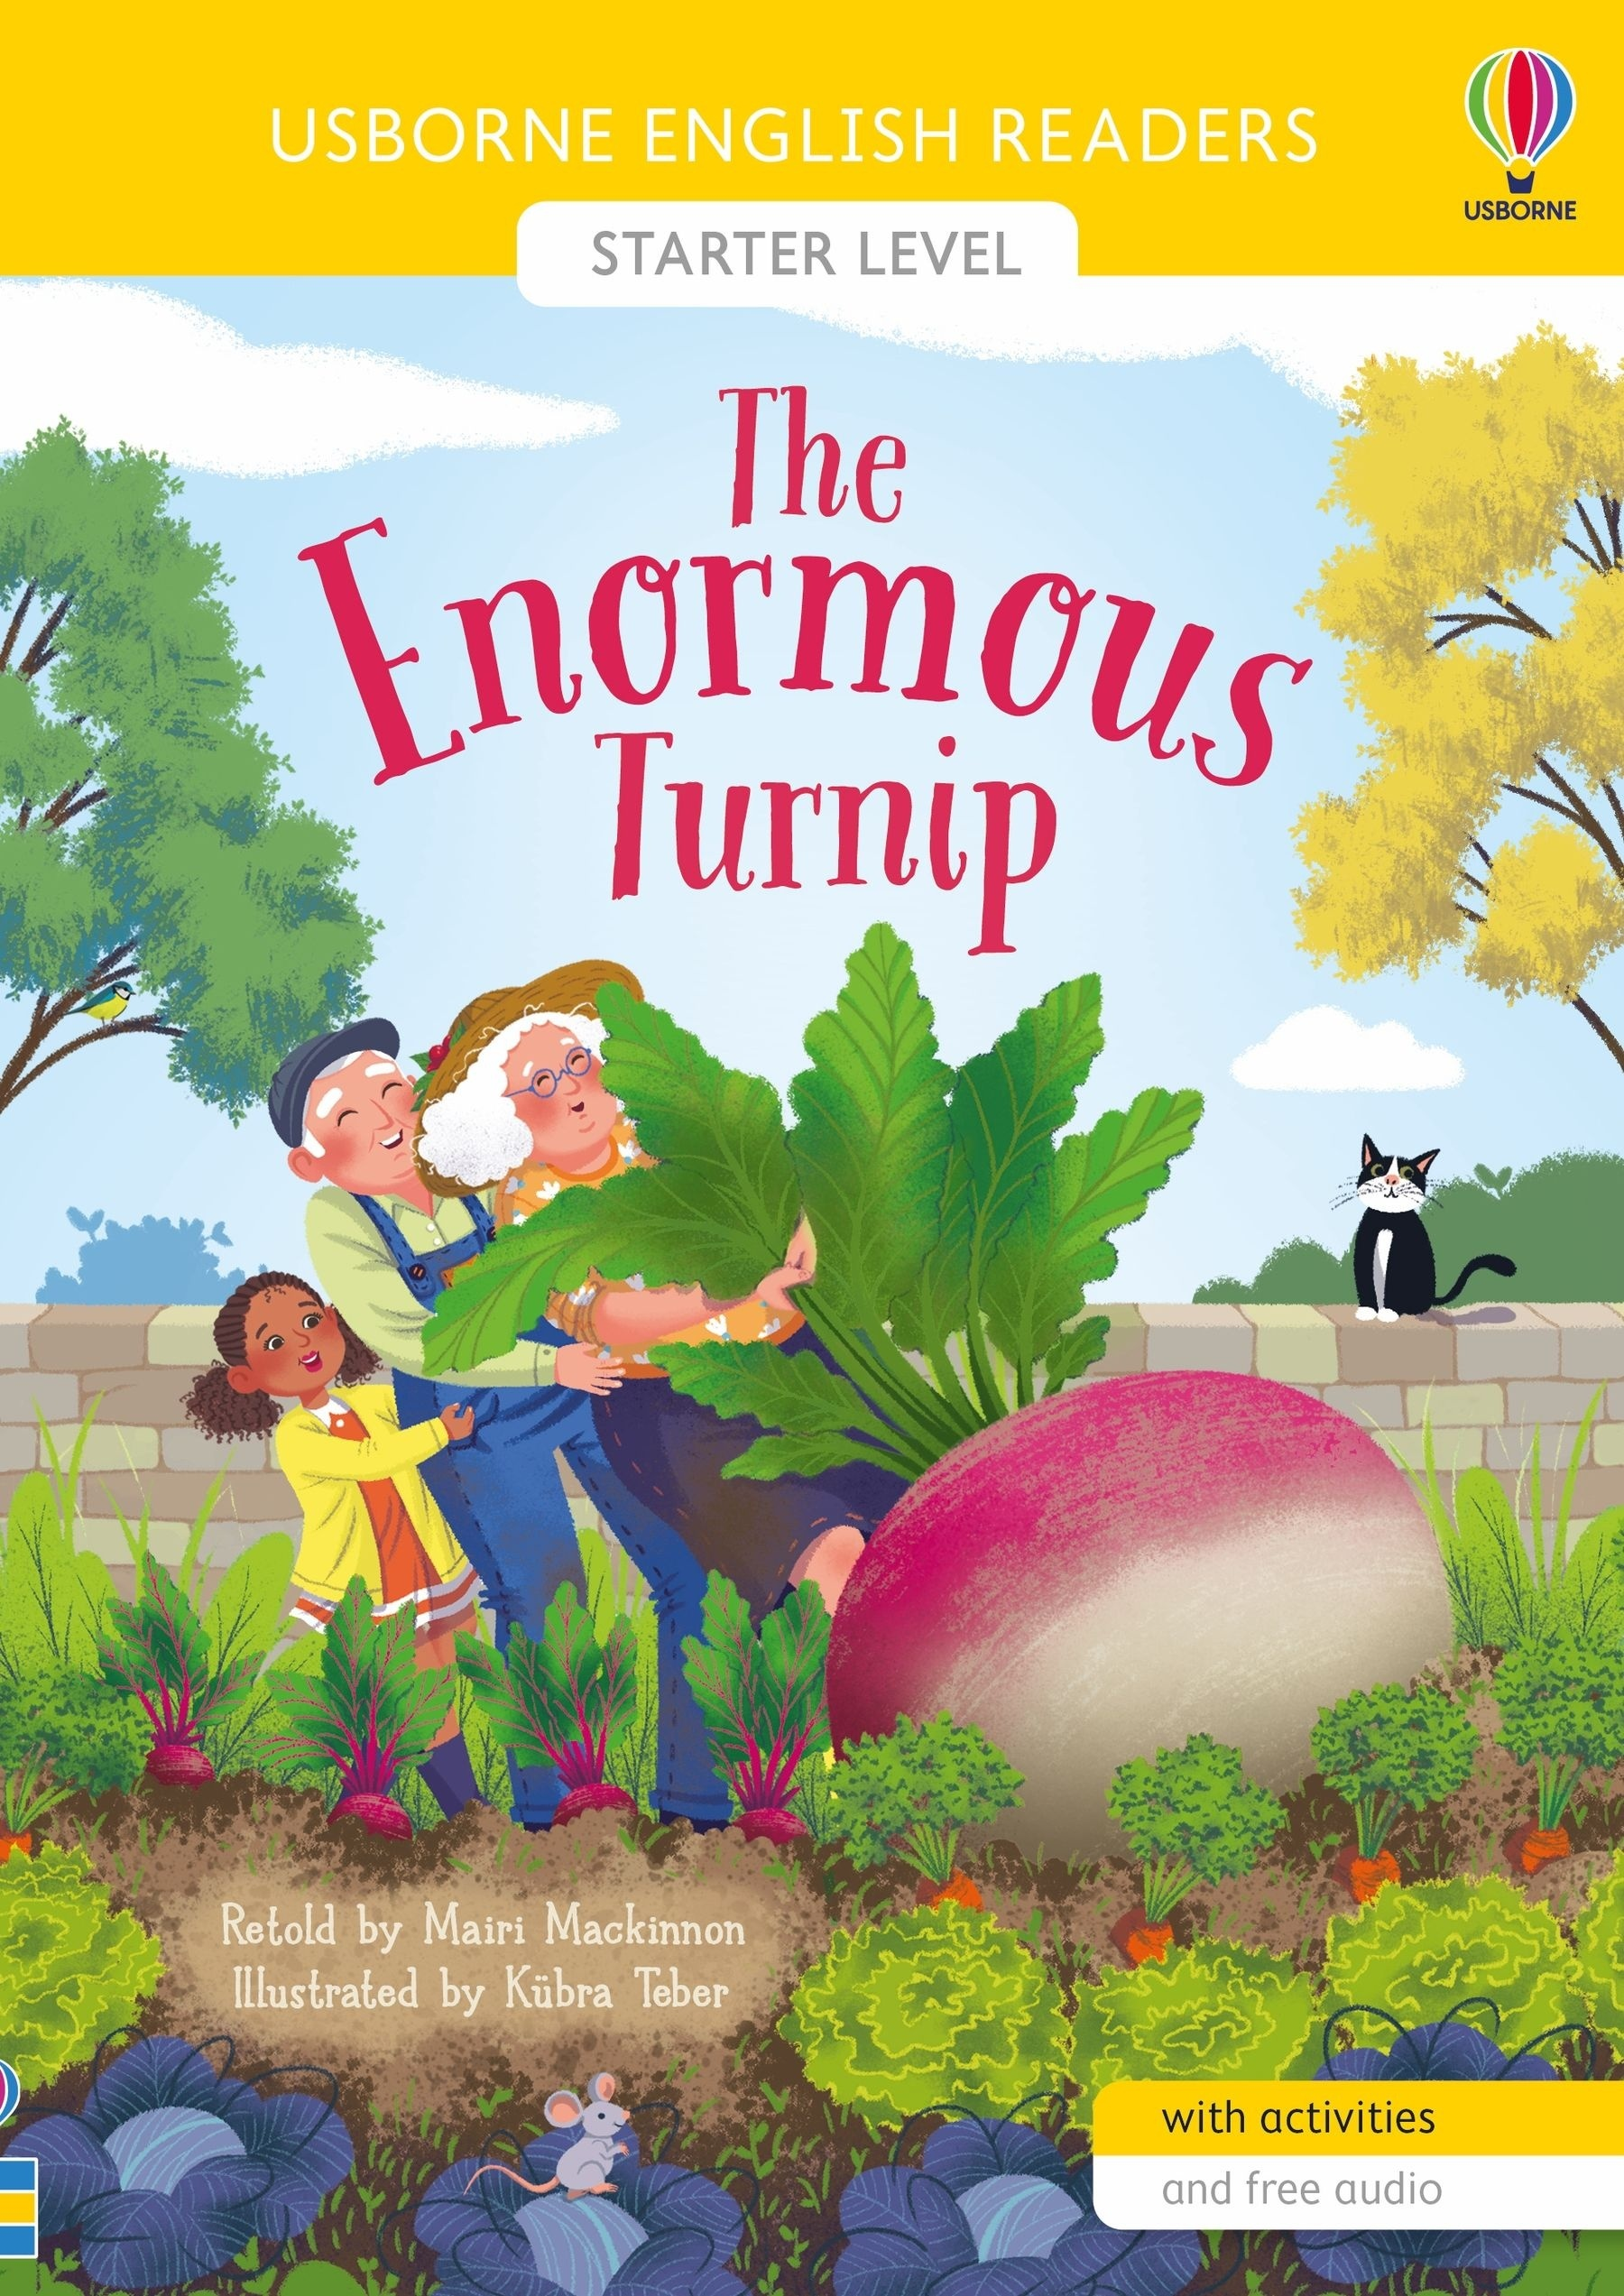 Starter: The Enormous Turnip